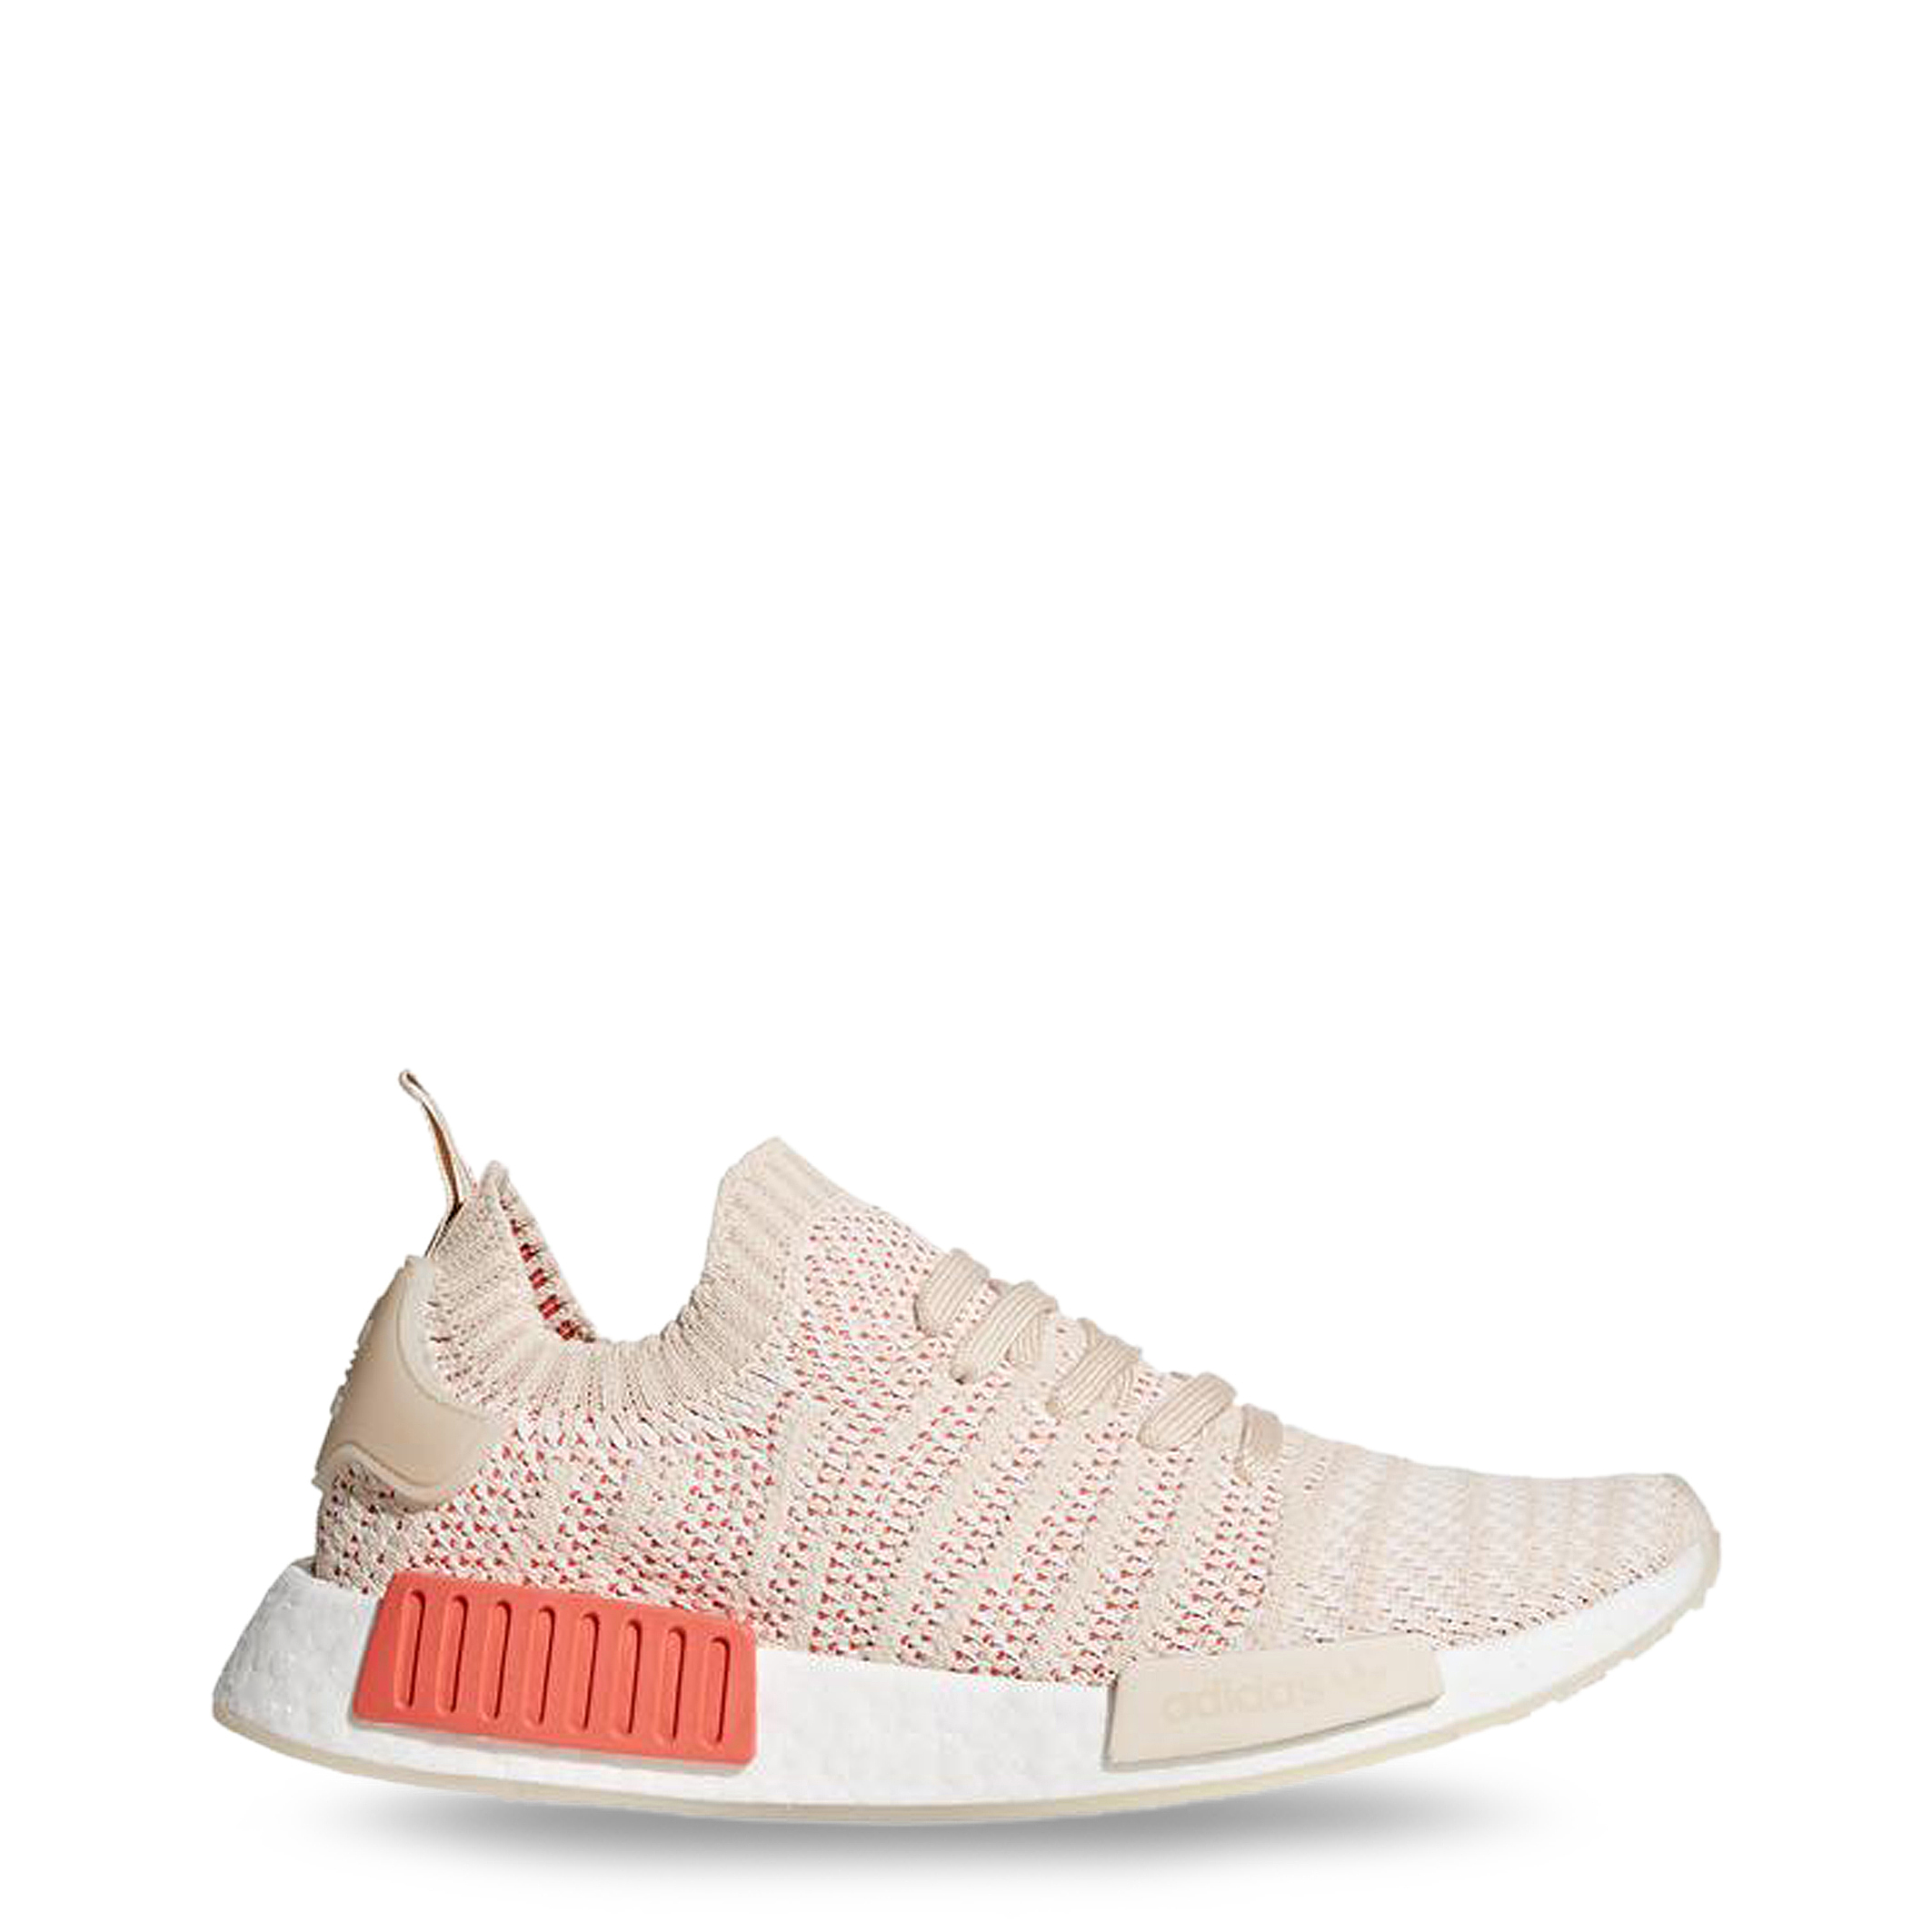 Sneakers Adidas CQ2030_NMD_R1_STLT